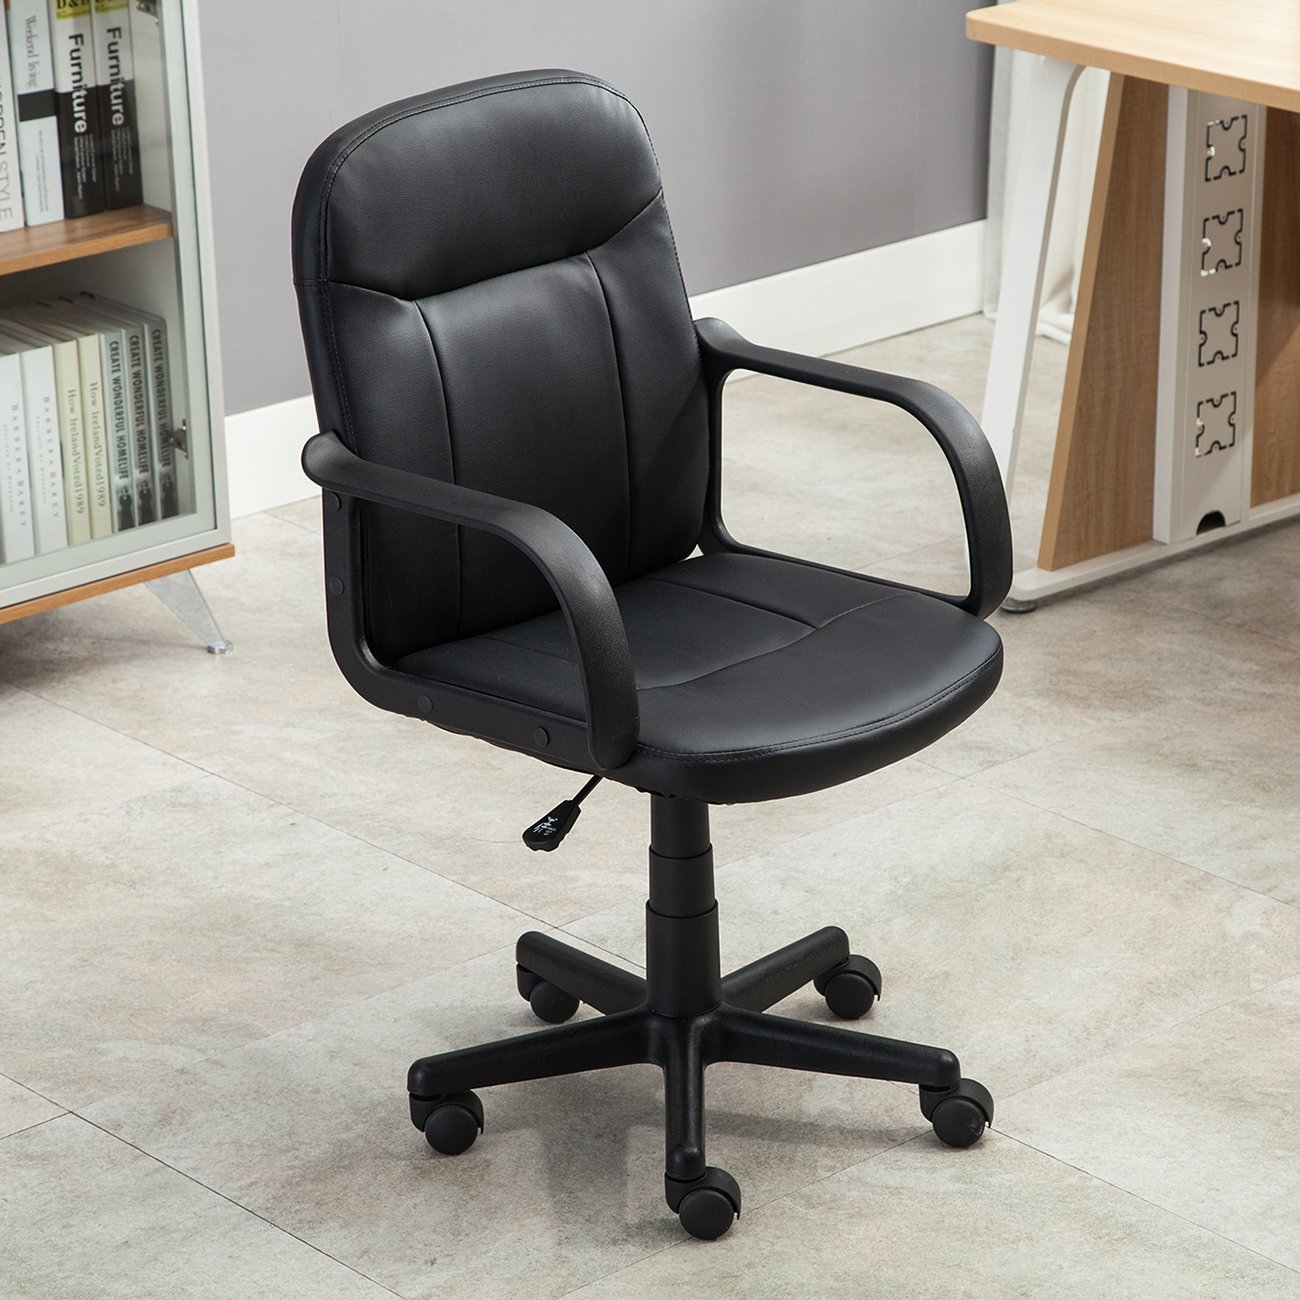 amazon com belleze mid back office chair pu leather ergonomic desk